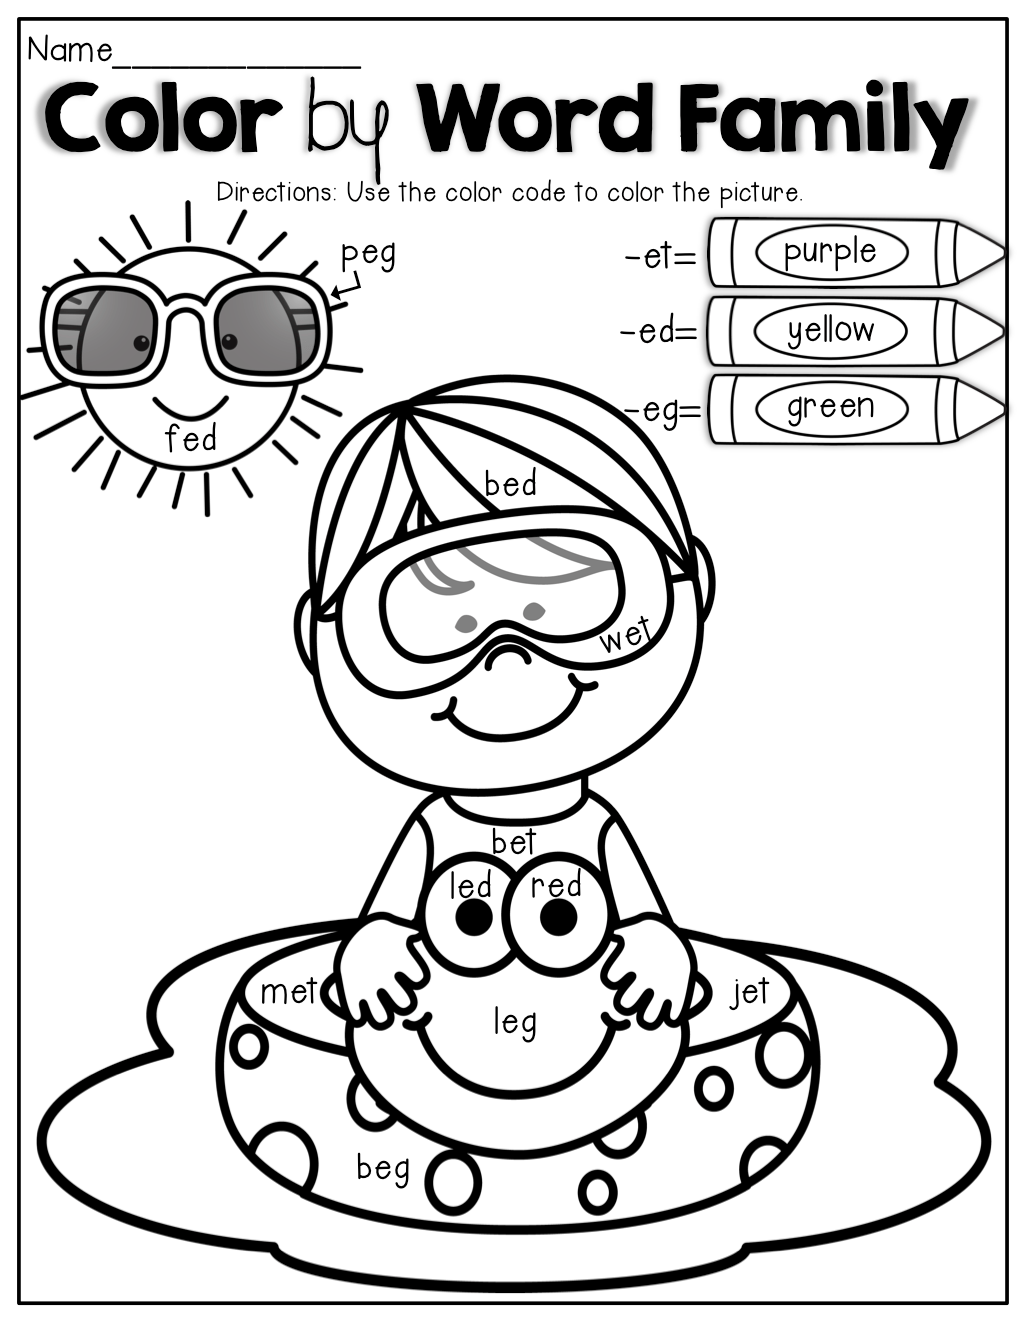 Color by Word Family! An educational COLORING BOOK that